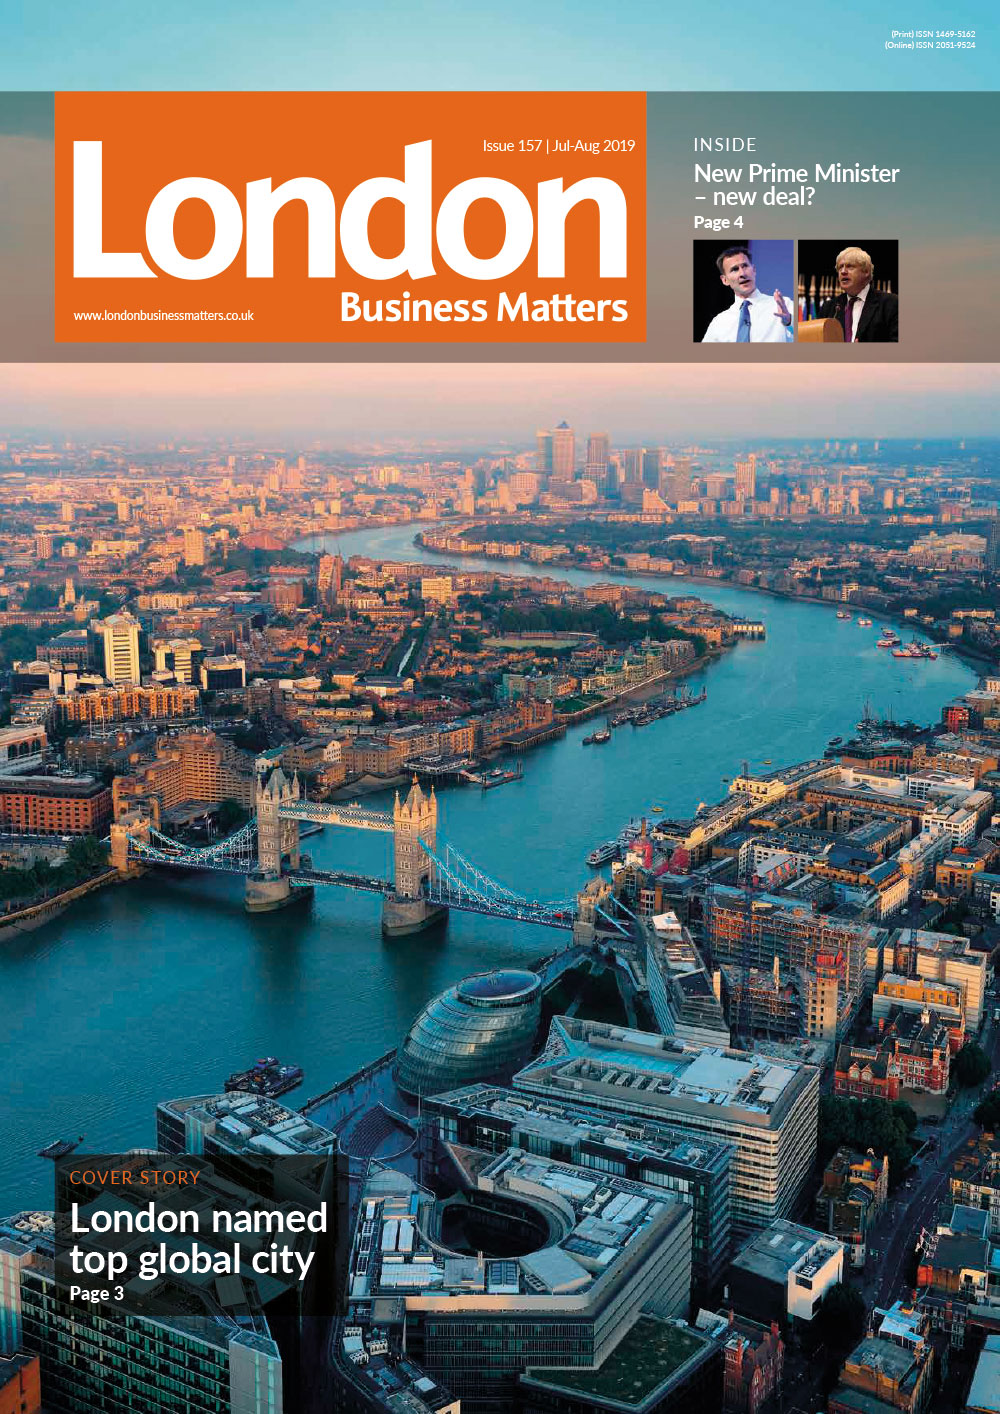 London Business Matters July / August 2019